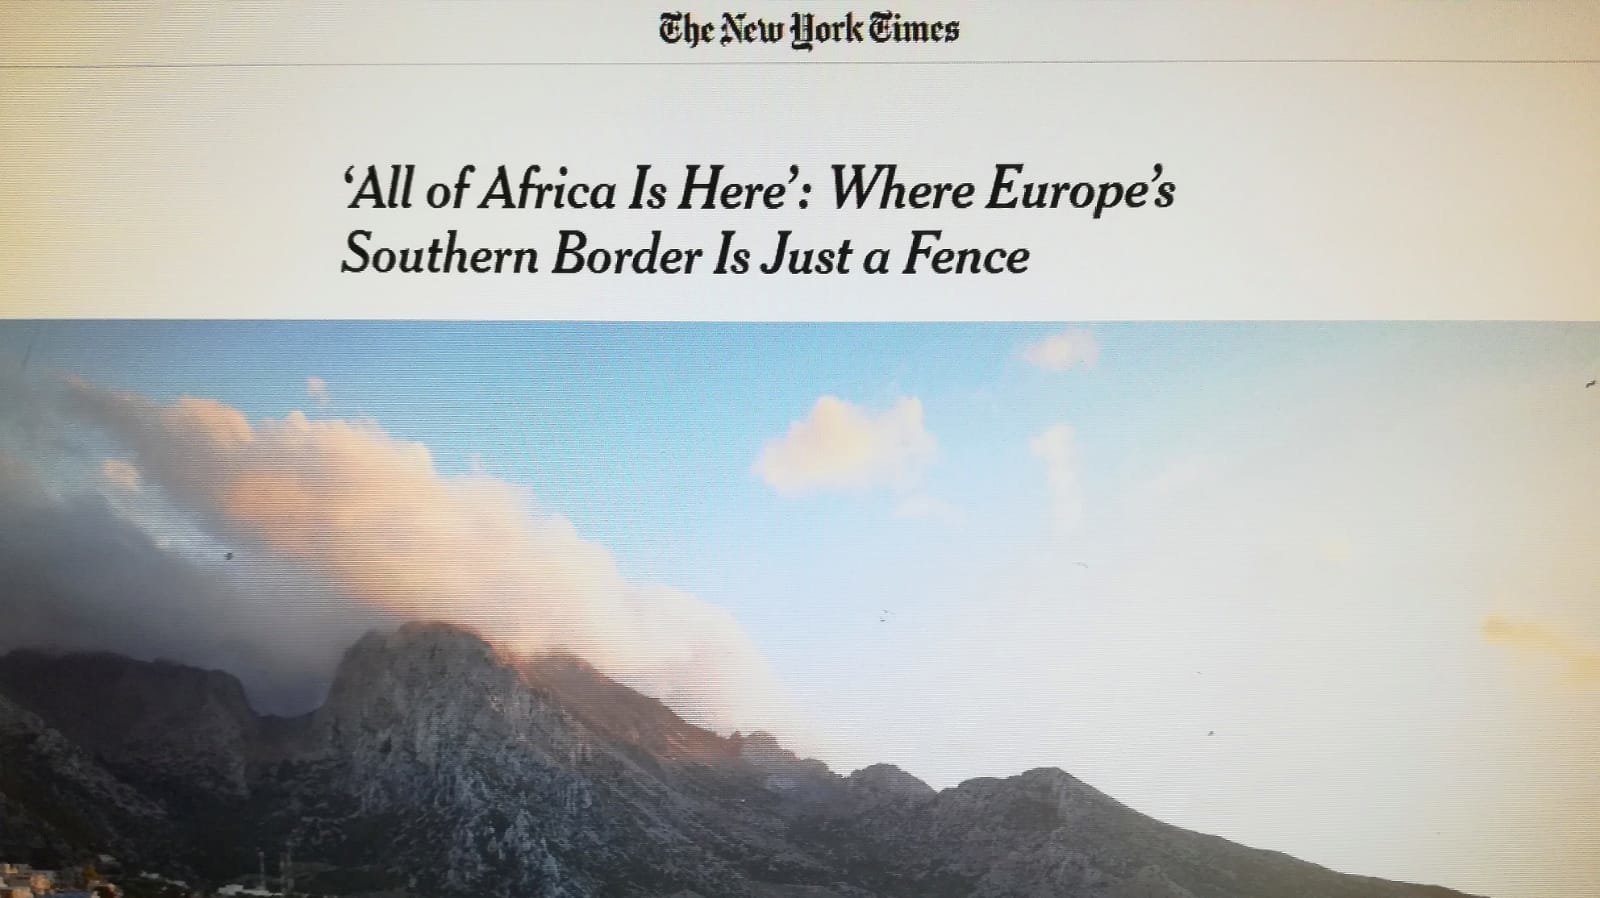 Limpia, ordenada y difícil de pronunciar. Así ve Ceuta The New York Times